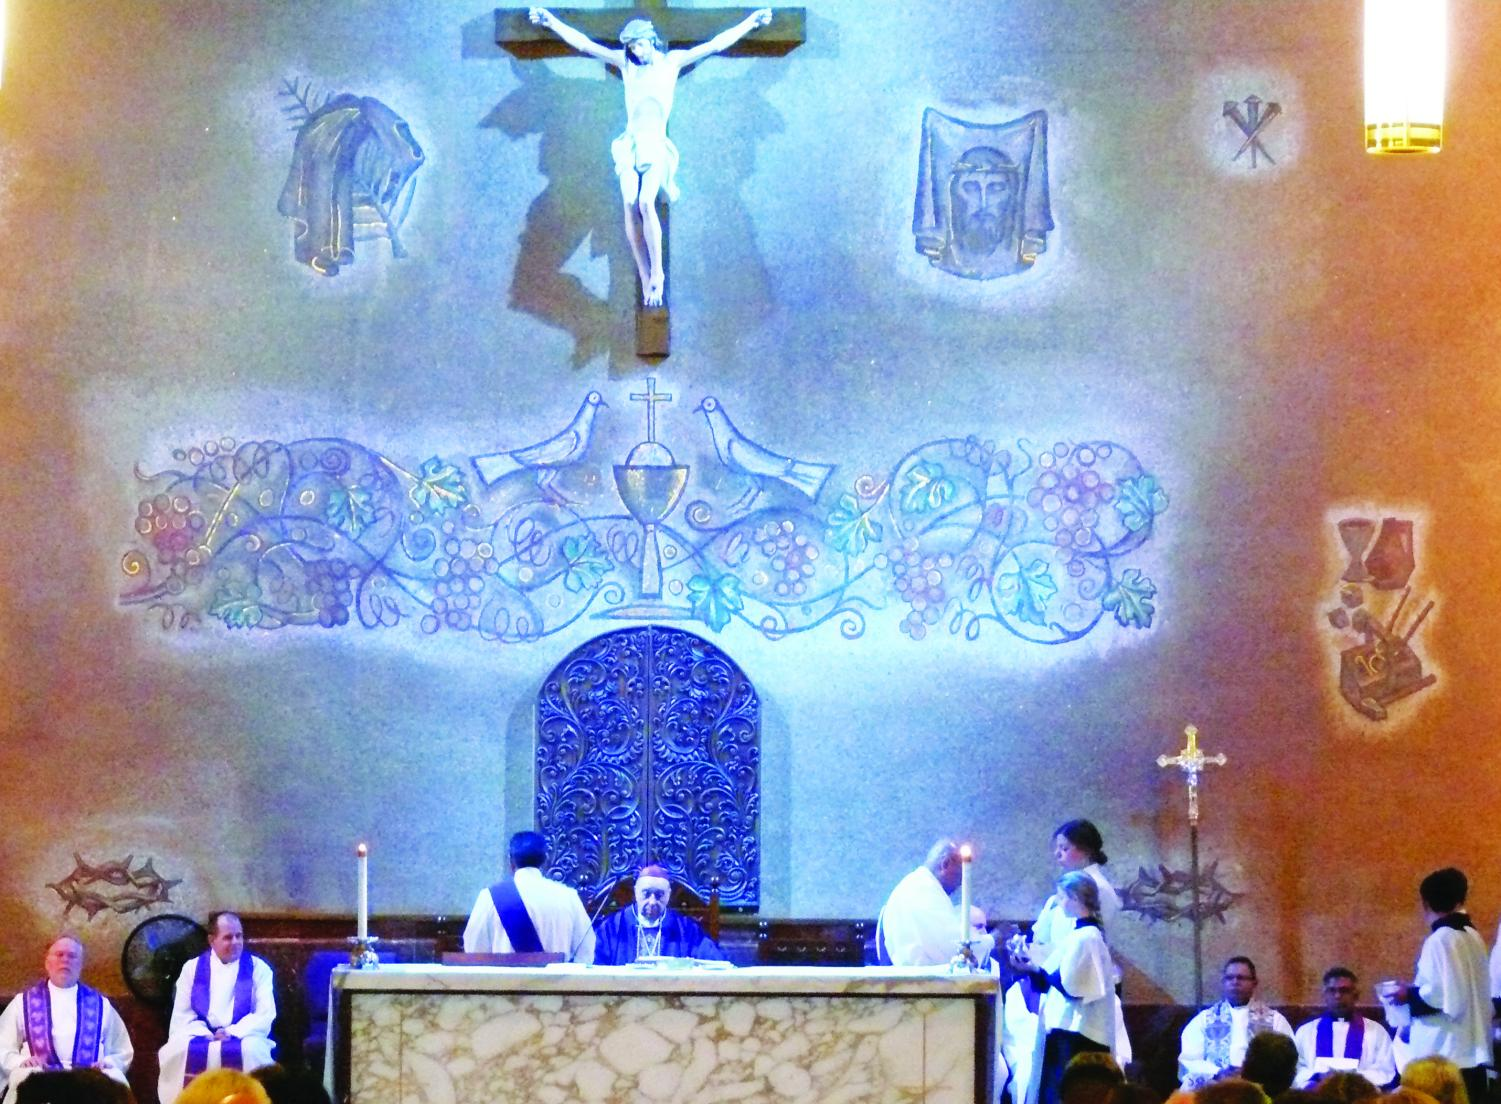 Bishop X. Ochoa and priests from the local parishes all come together to celebrate Mass.